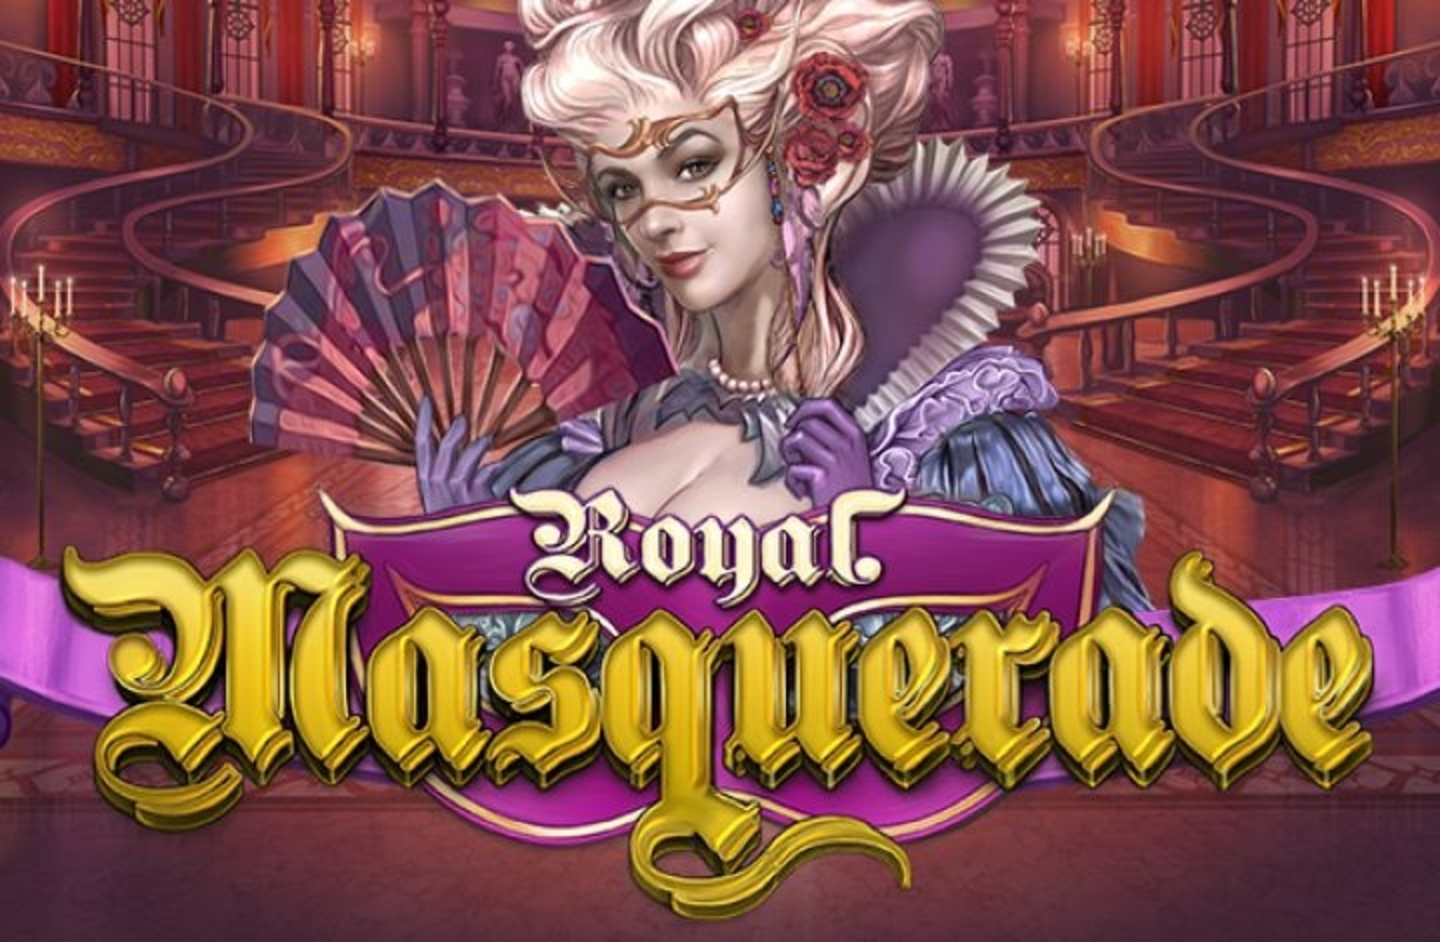 The Royal Masquerade (Play'n Go) Online Slot Demo Game by Play'n Go